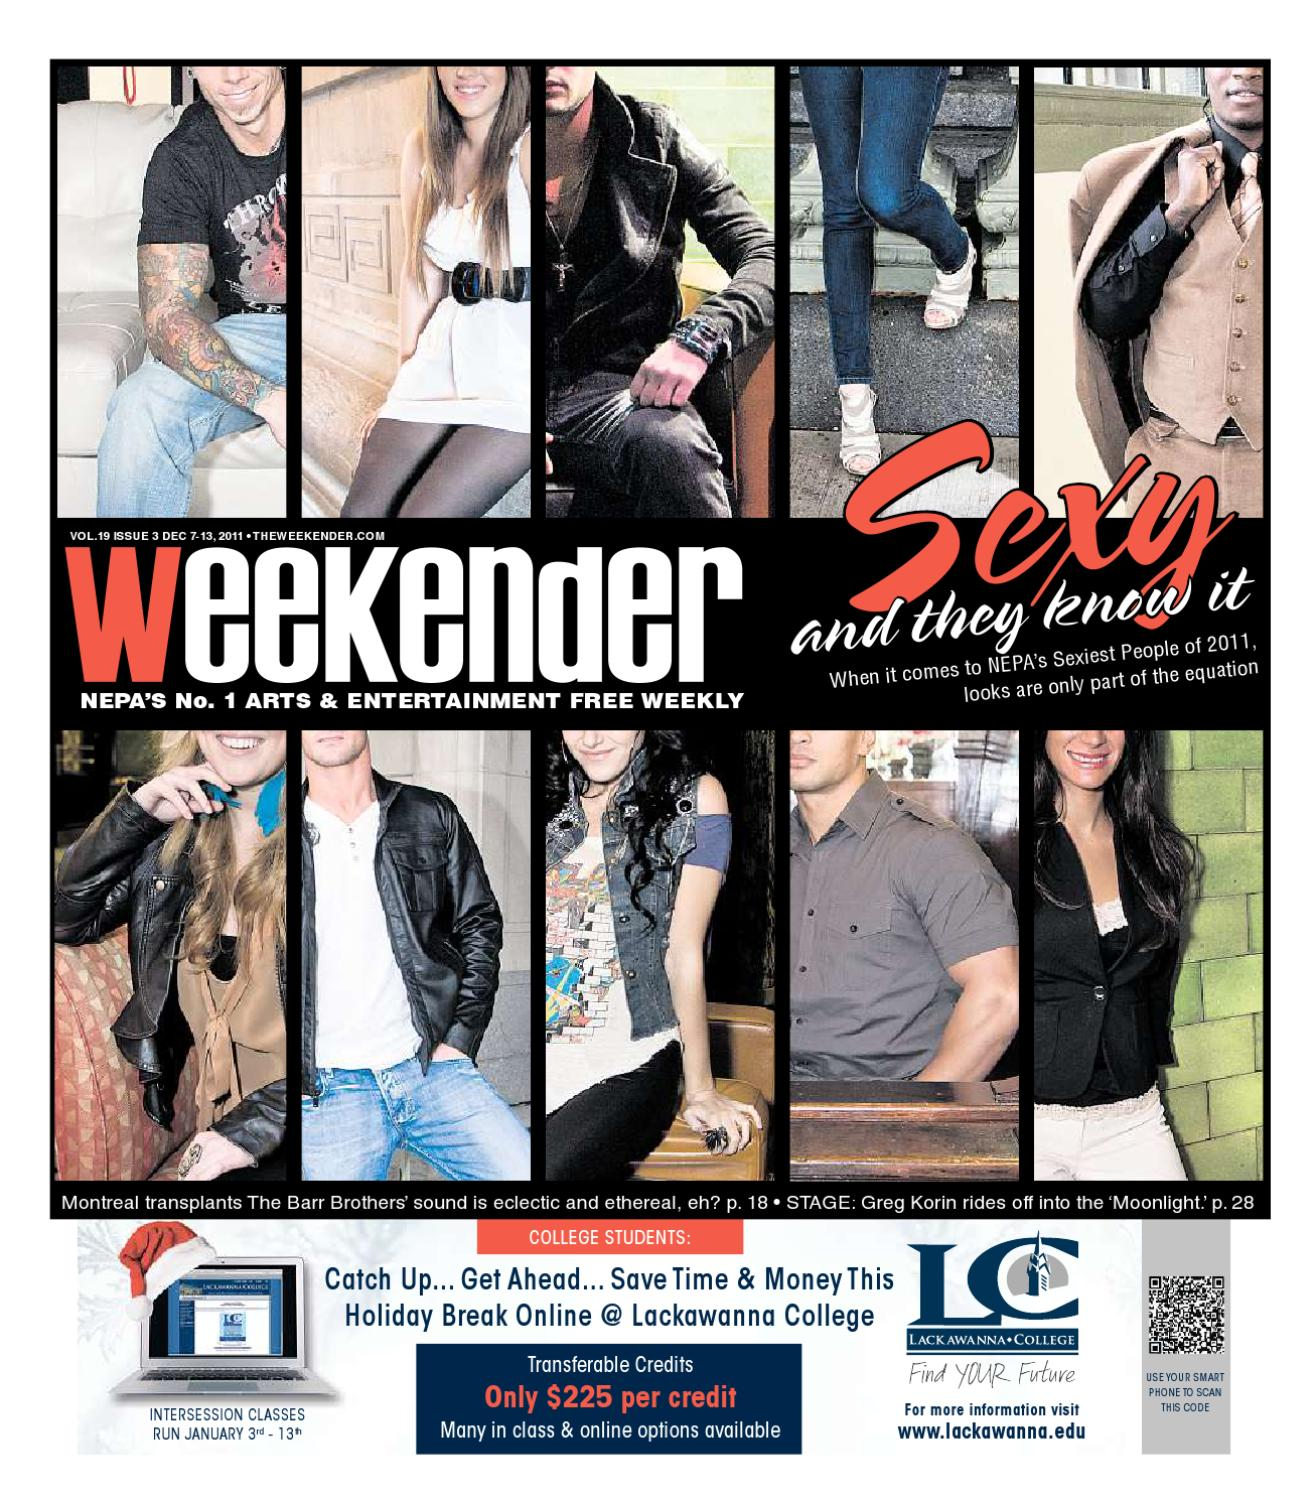 a8acaf0b090694 The Weekender 12-07-2011 by The Wilkes-Barre Publishing Company - issuu